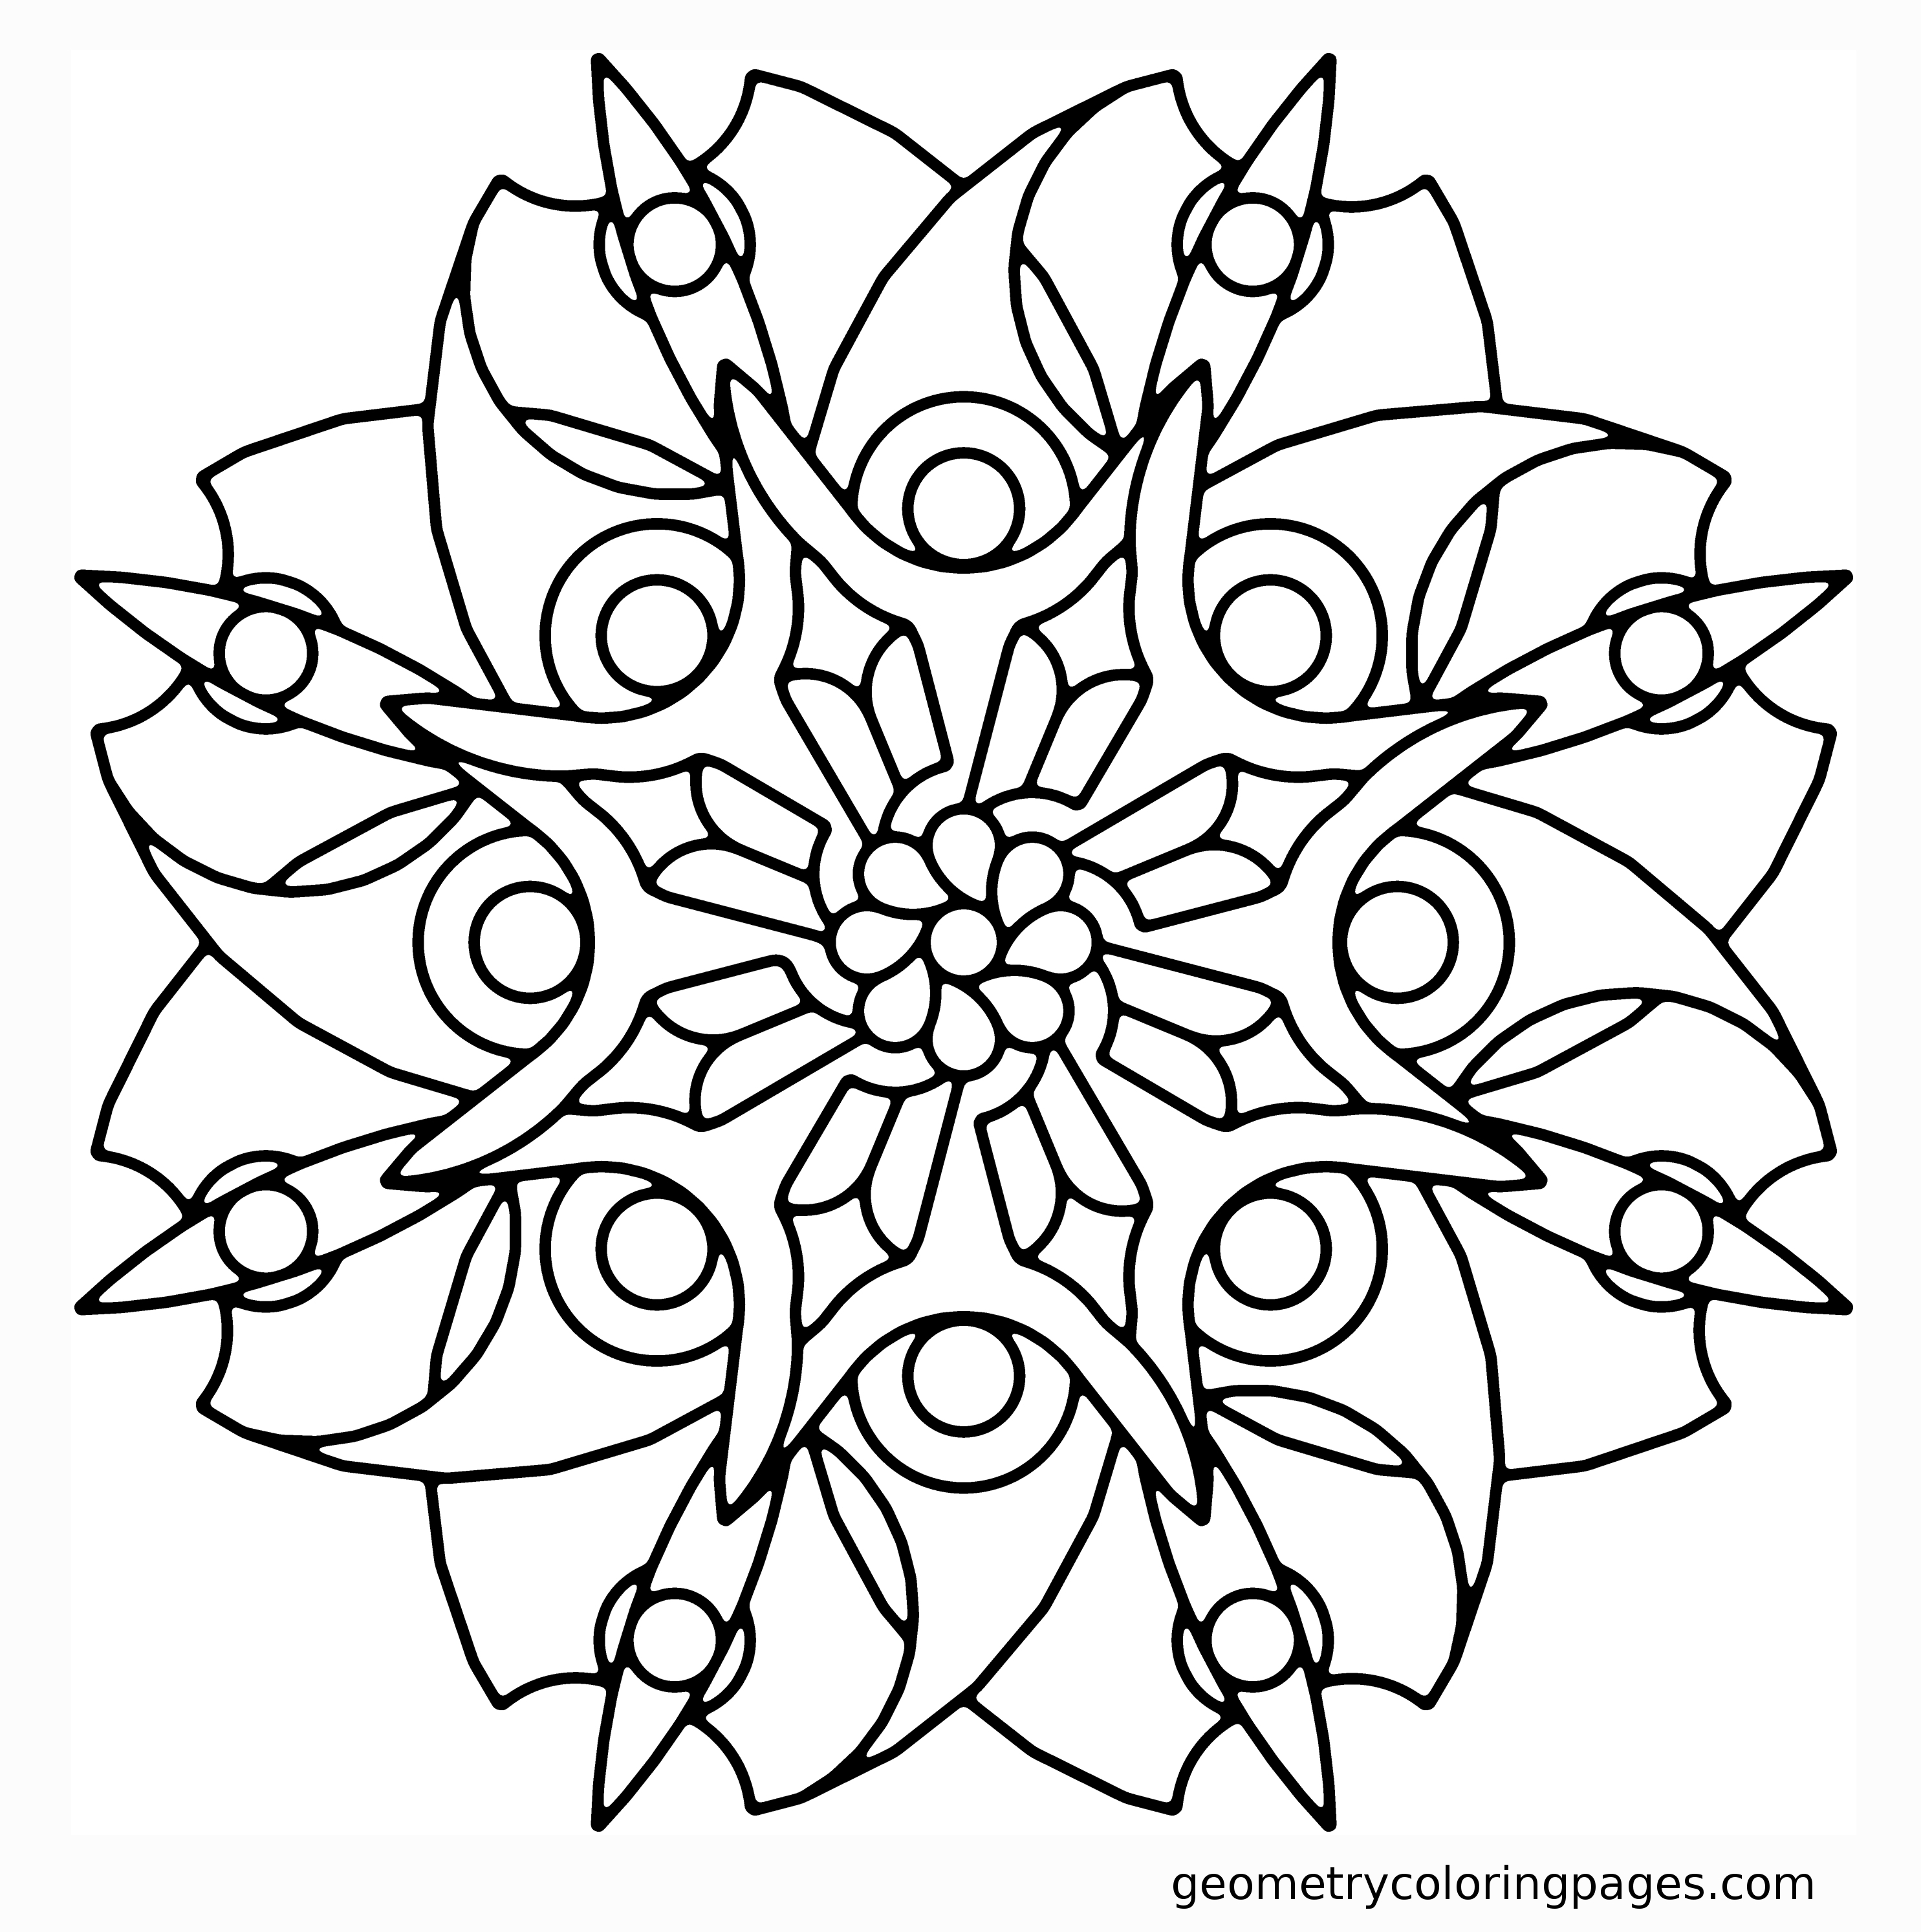 flower pattern coloring pages flower pattern coloring pages coloring home coloring pages flower pattern